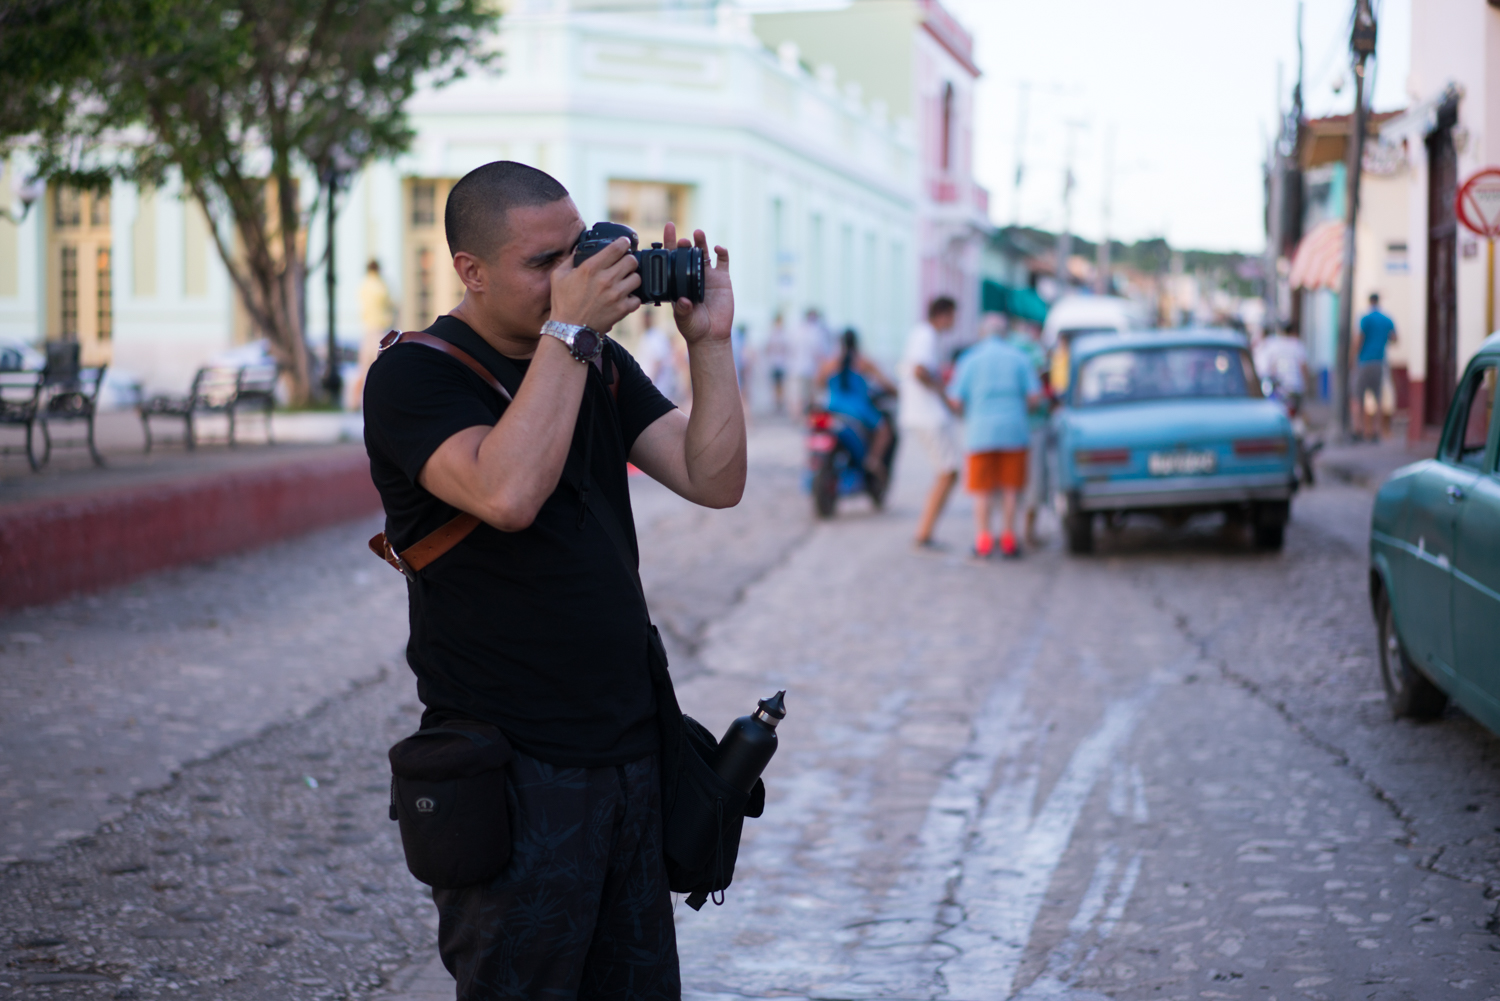 Efrain spotting a photo opportunity.  Sony A7RII, Zeiss 55mm f/1.8 (iso200, f/1.8, 1/250s)